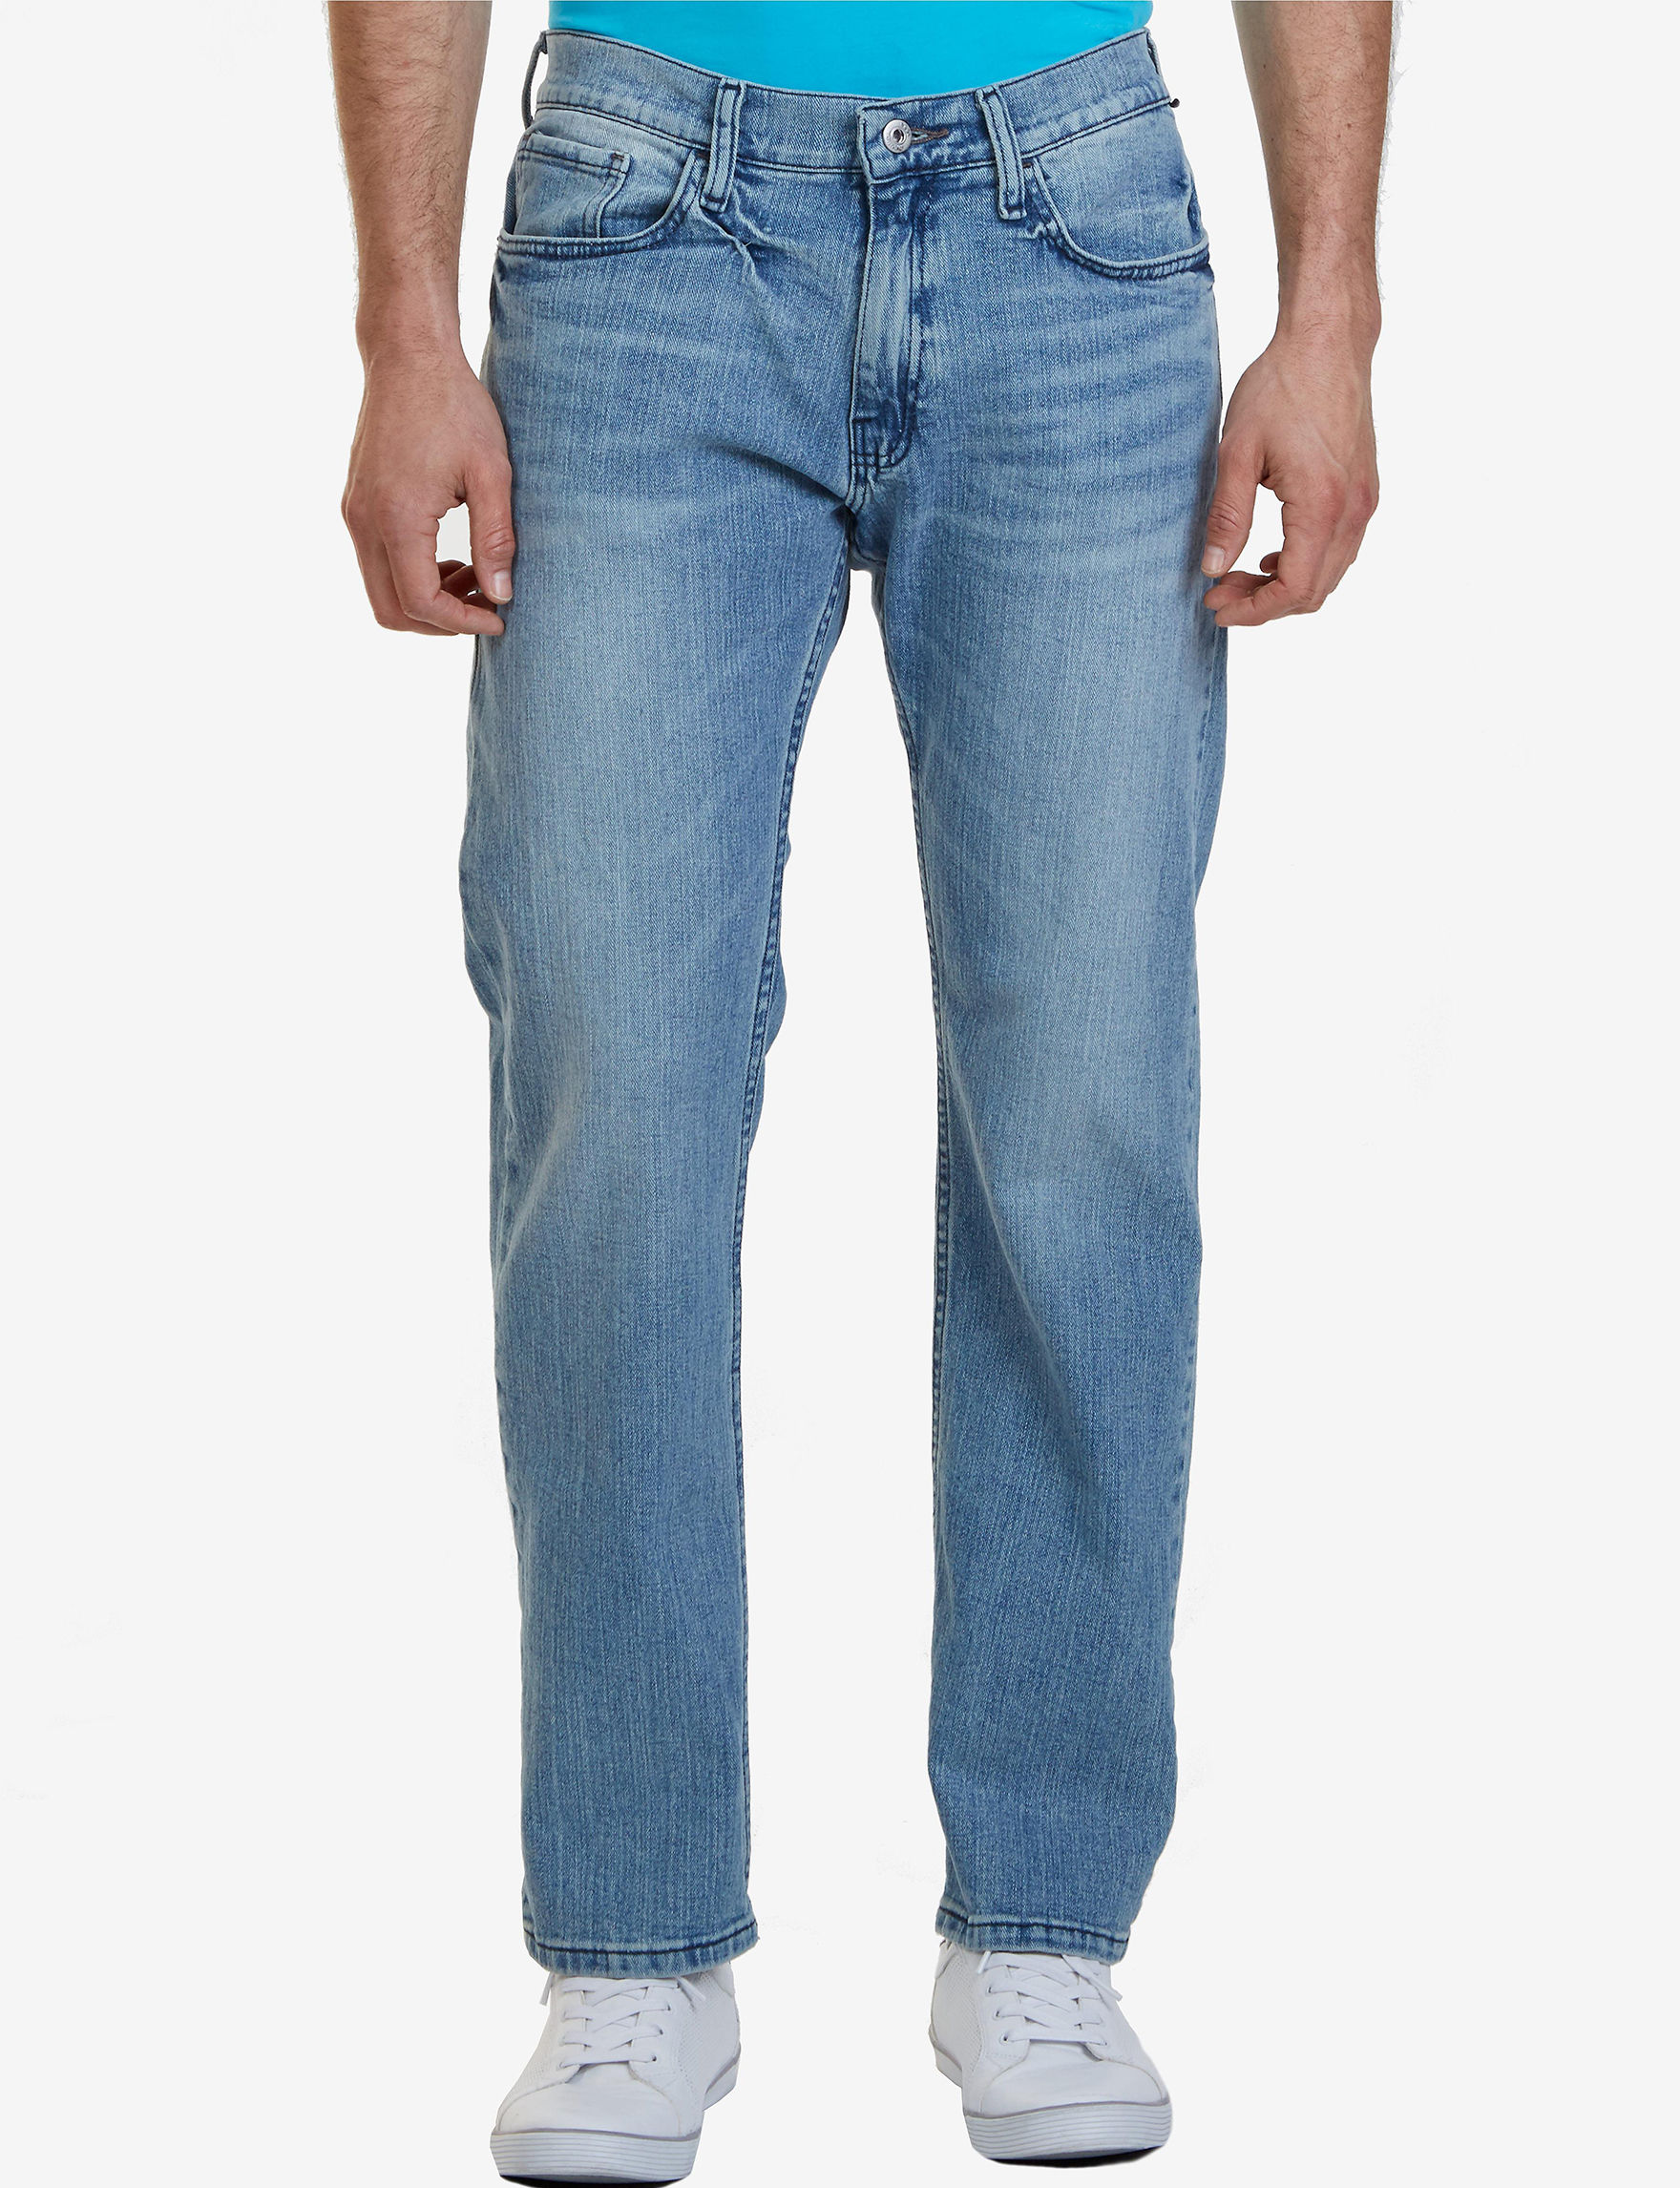 Nautica Blue Denim Relaxed